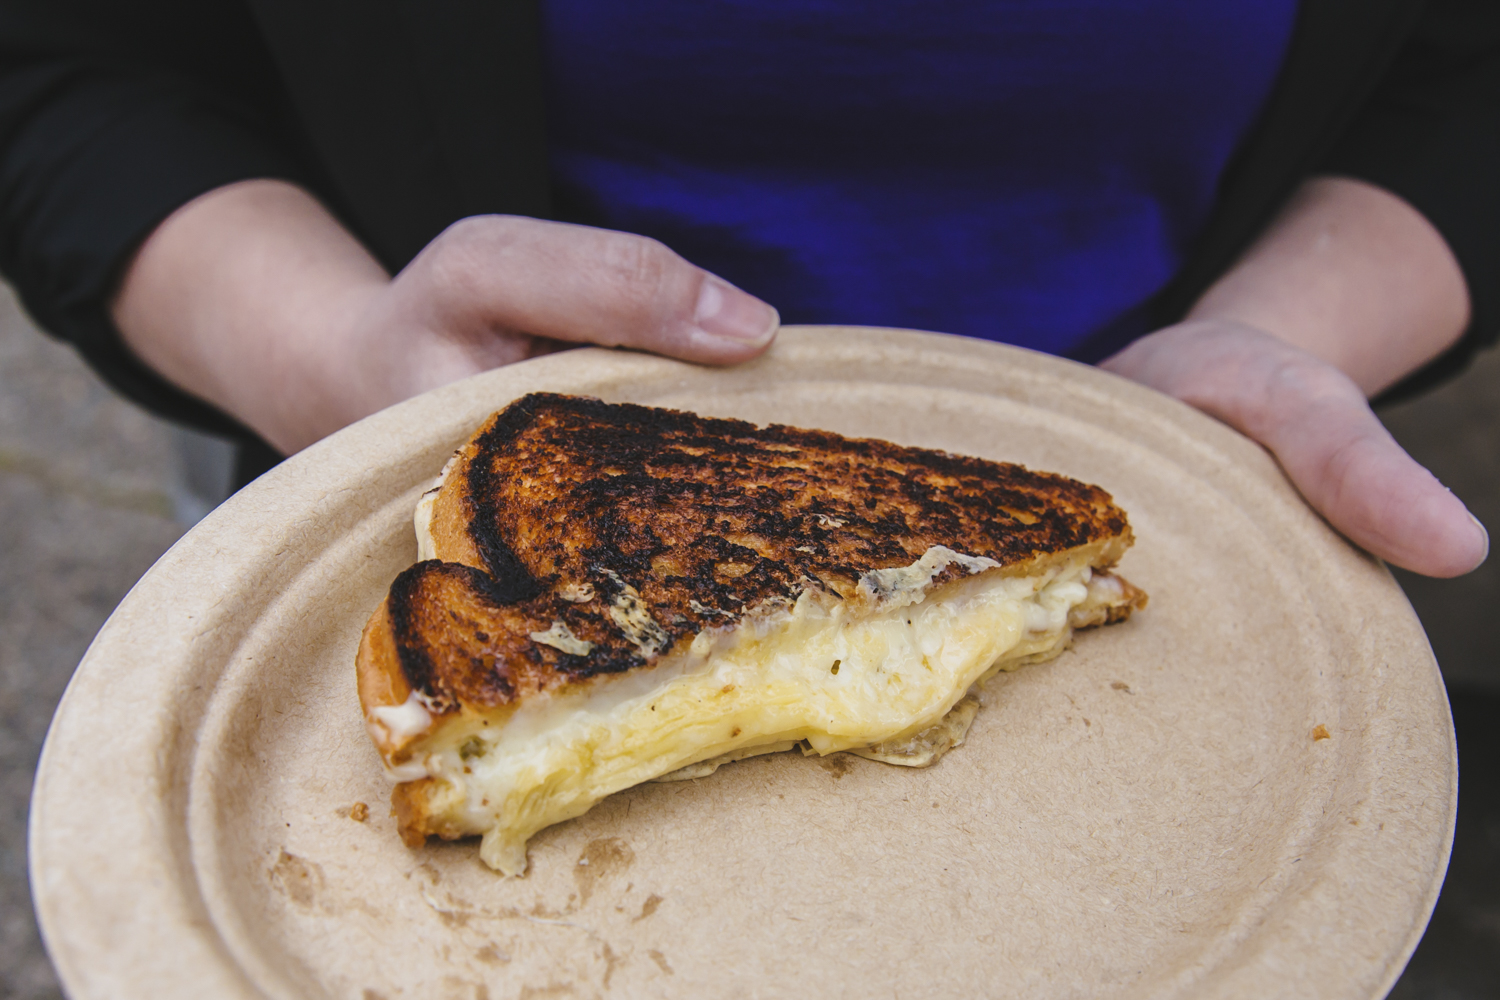 <p>&quot;The White Cheddar Royale&quot; from the Bread and Circuses Food truck:  Truffle Duck Fat Butter, Darigold White Cheddar, Brioche. Seattle's annual Grilled Cheese Grand Prix event kicked off this weekend, properly celebrating April as National Grilled Cheese Month. We went, obviously (for work....) and here were the juiciest sammies on the block we could find. The good news? Pretty much all of these come from brick and mortar stores you can find any time in the city - not just April, and not just t the Grand Prix. (Image: Sunita Martini / Seattle Refined)</p>